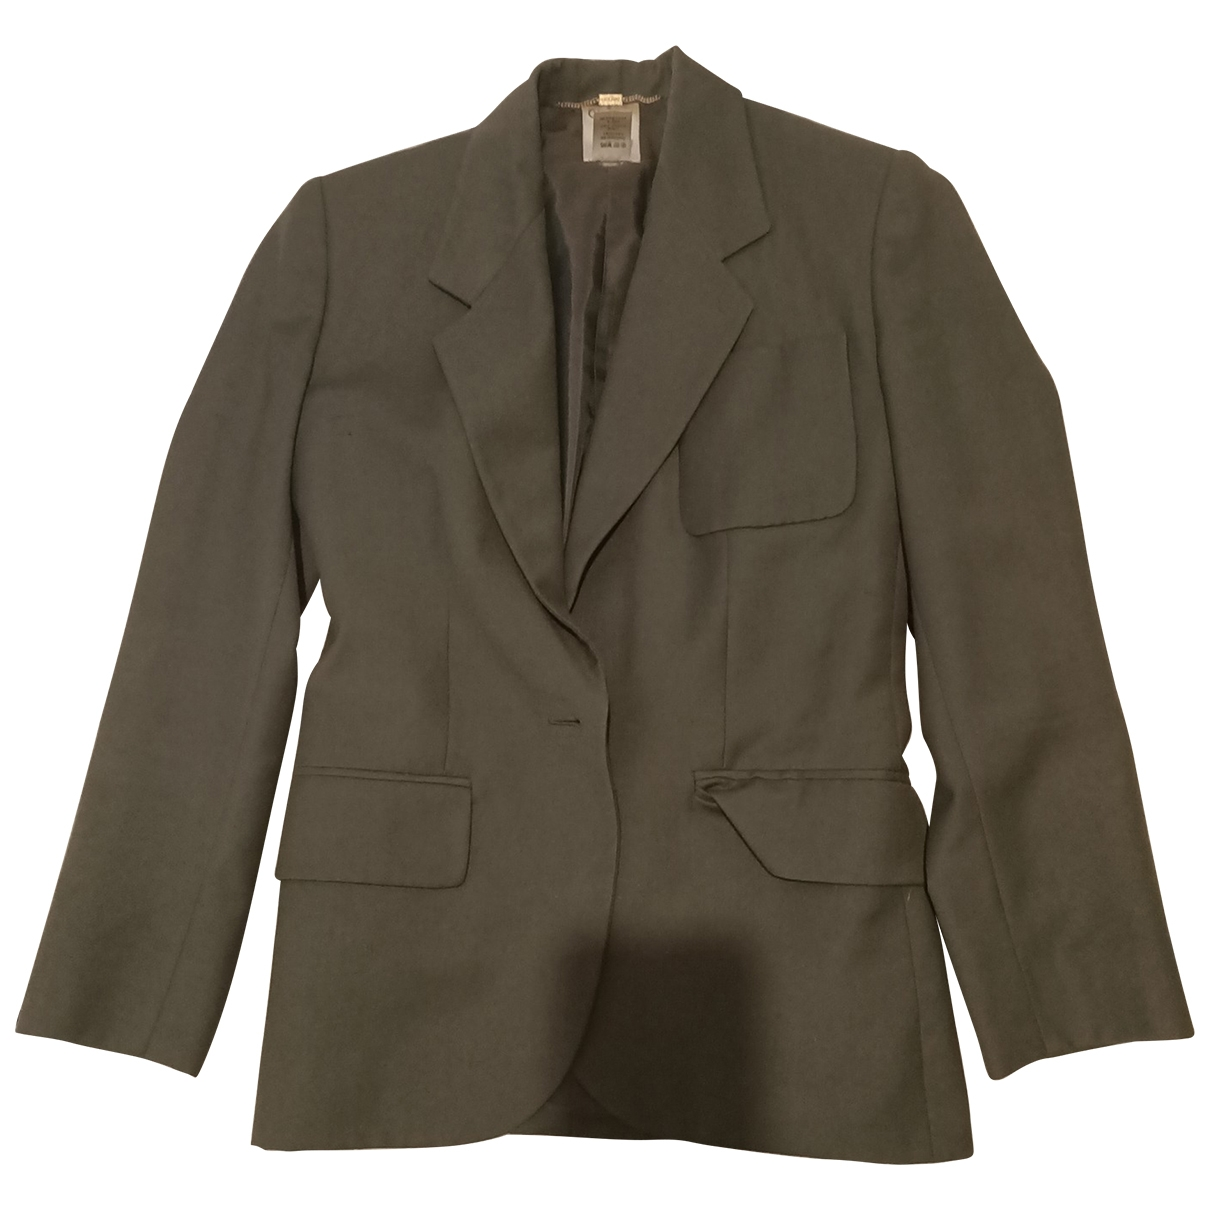 Celine N Khaki Cotton jacket for Women 36 FR